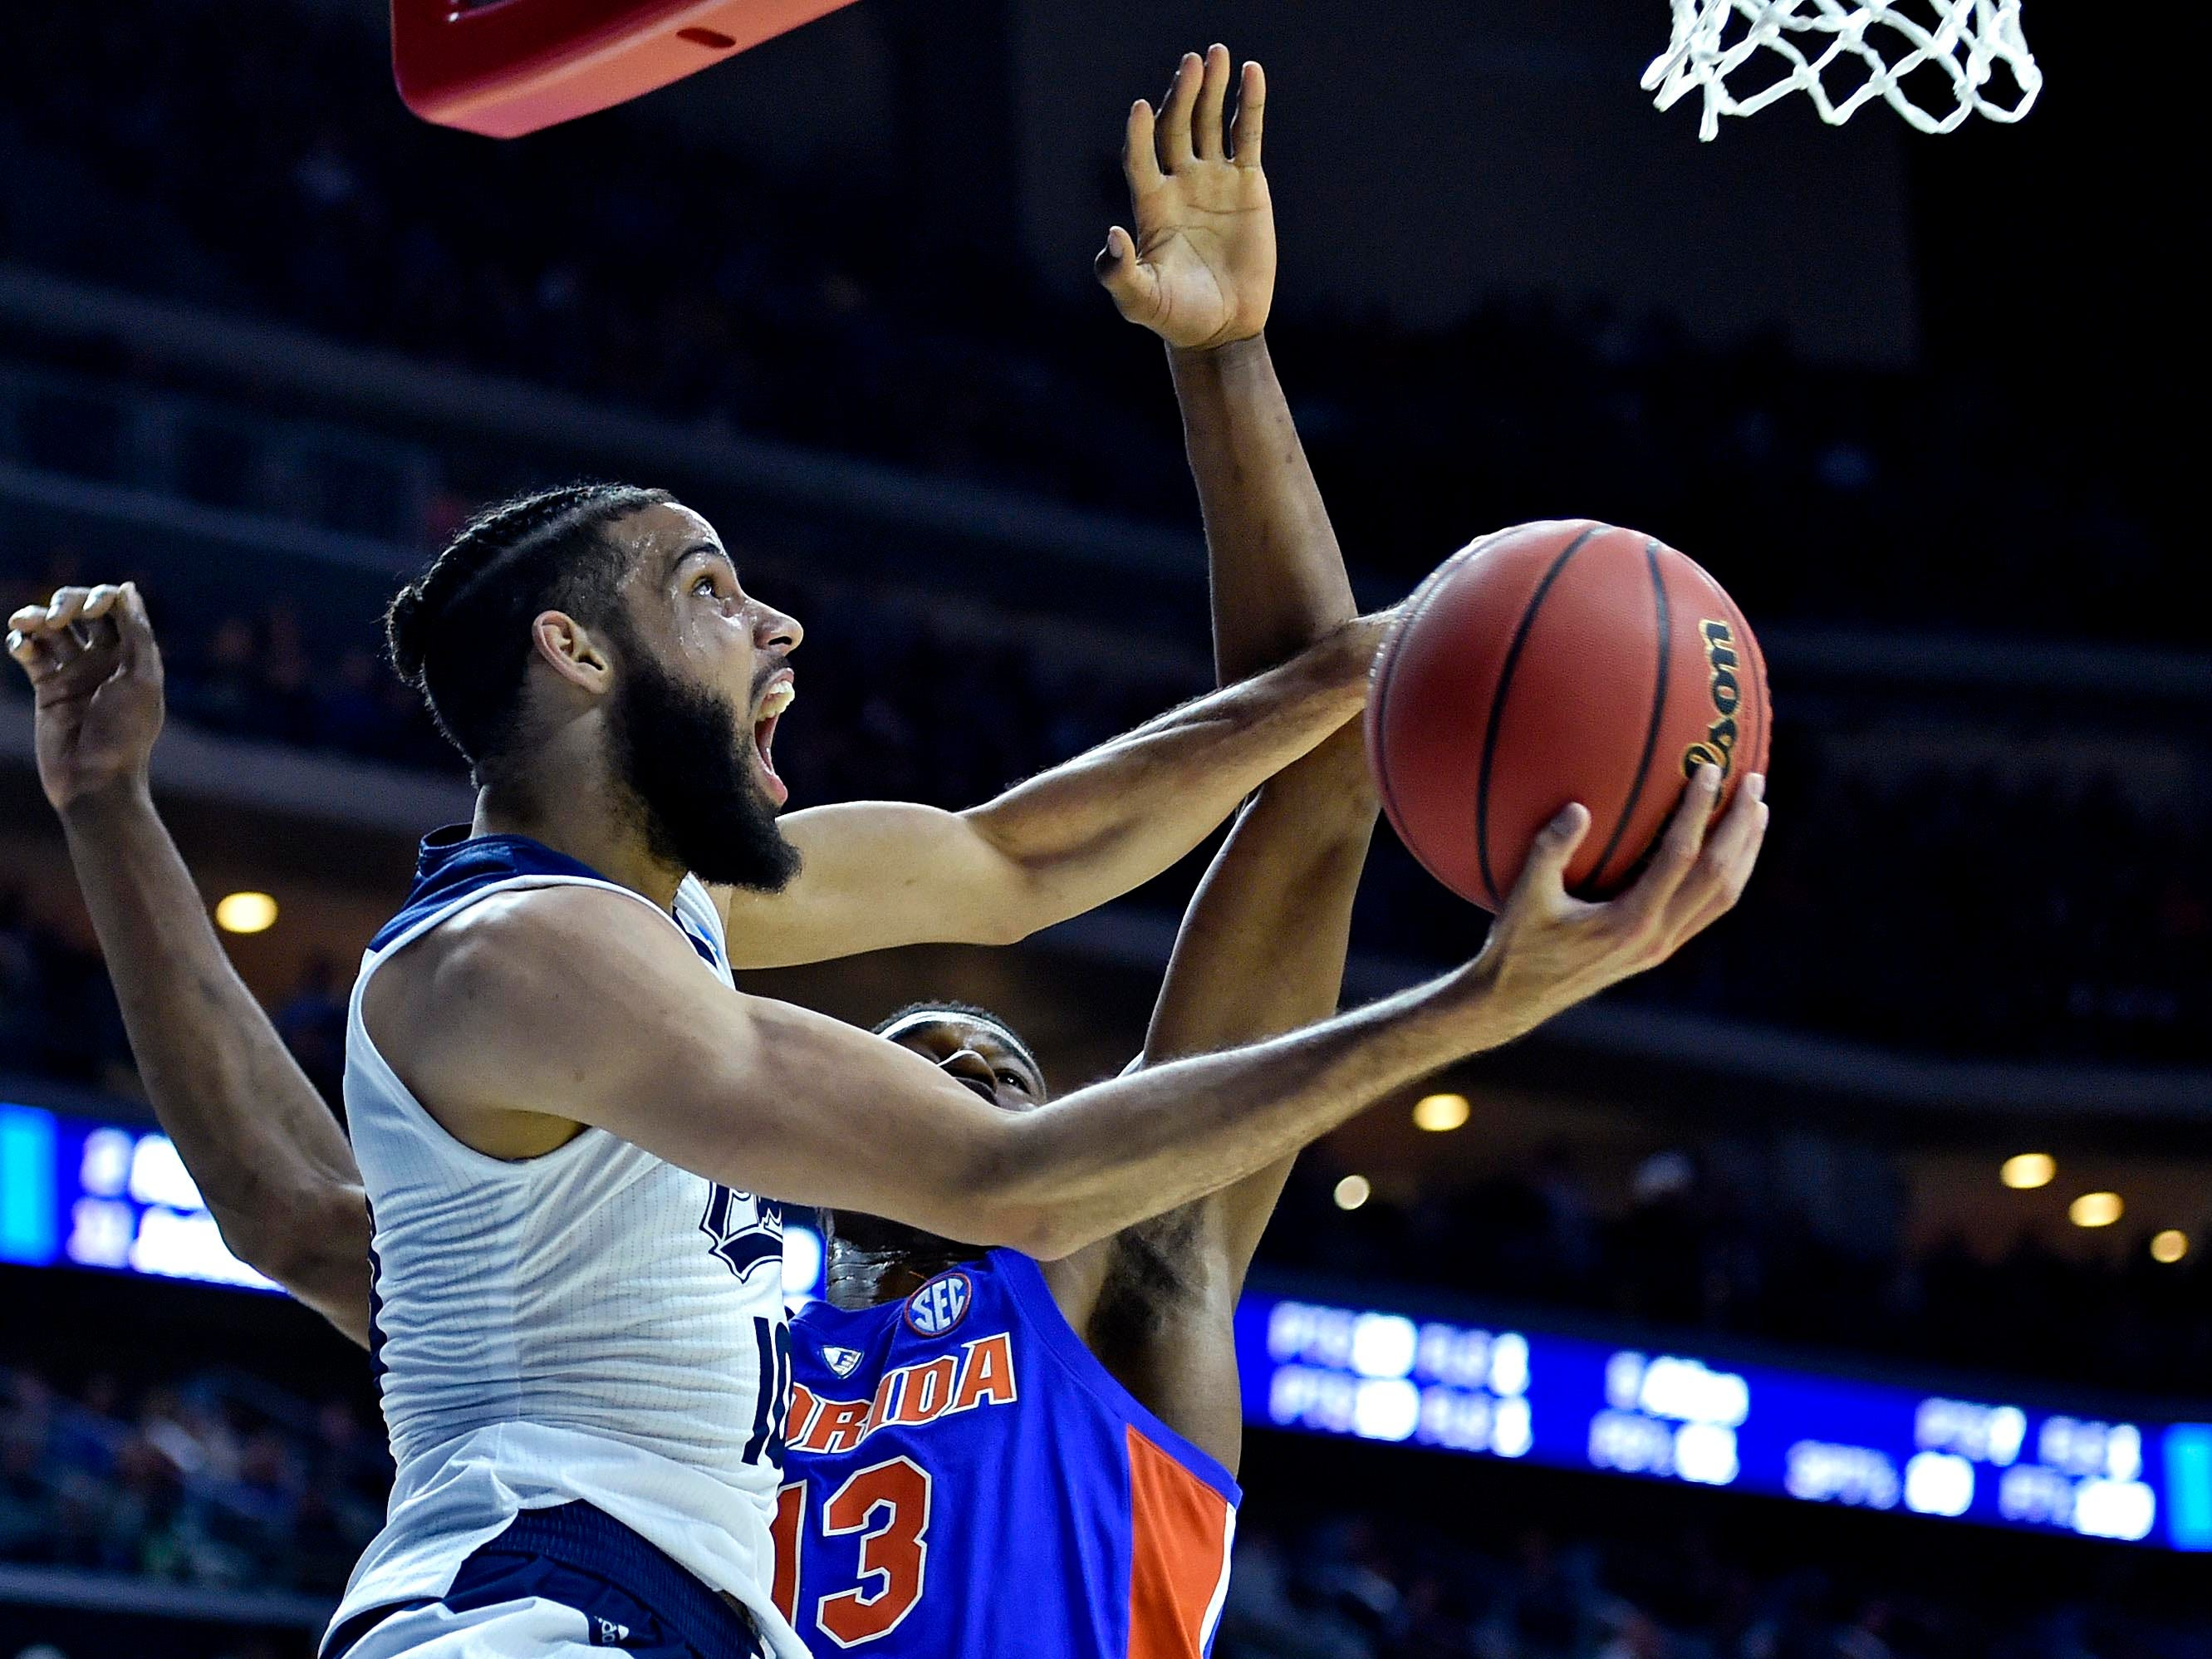 First round: Nevada forward Caleb Martin drives to the basket against Florida center Kevarrius Hayes. Martin struggled in the loss, shooting just 5-22 from the field.